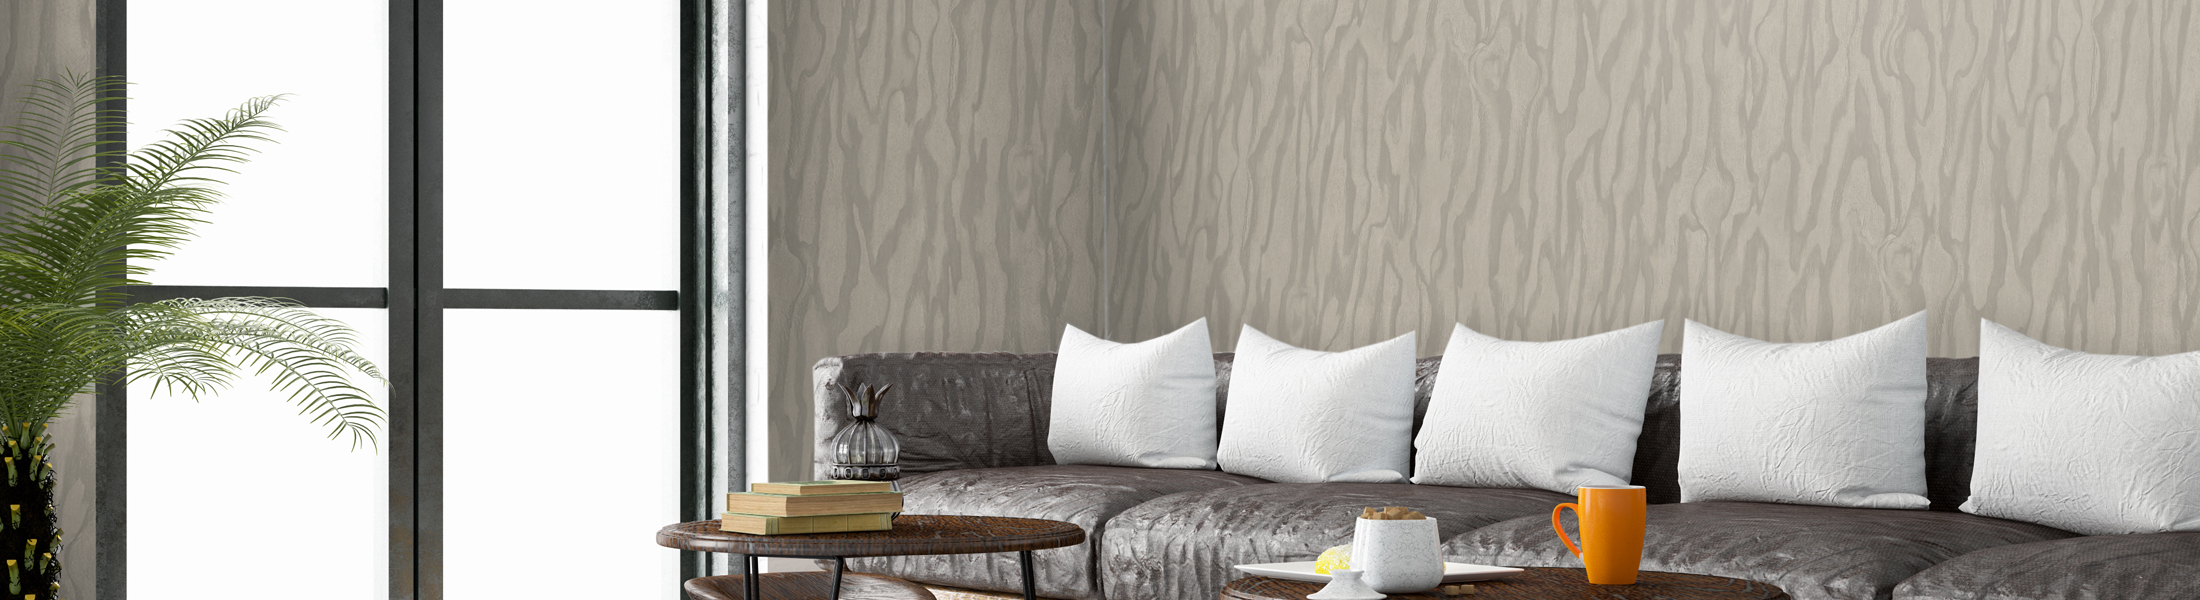 Commercial Wallcovering Example